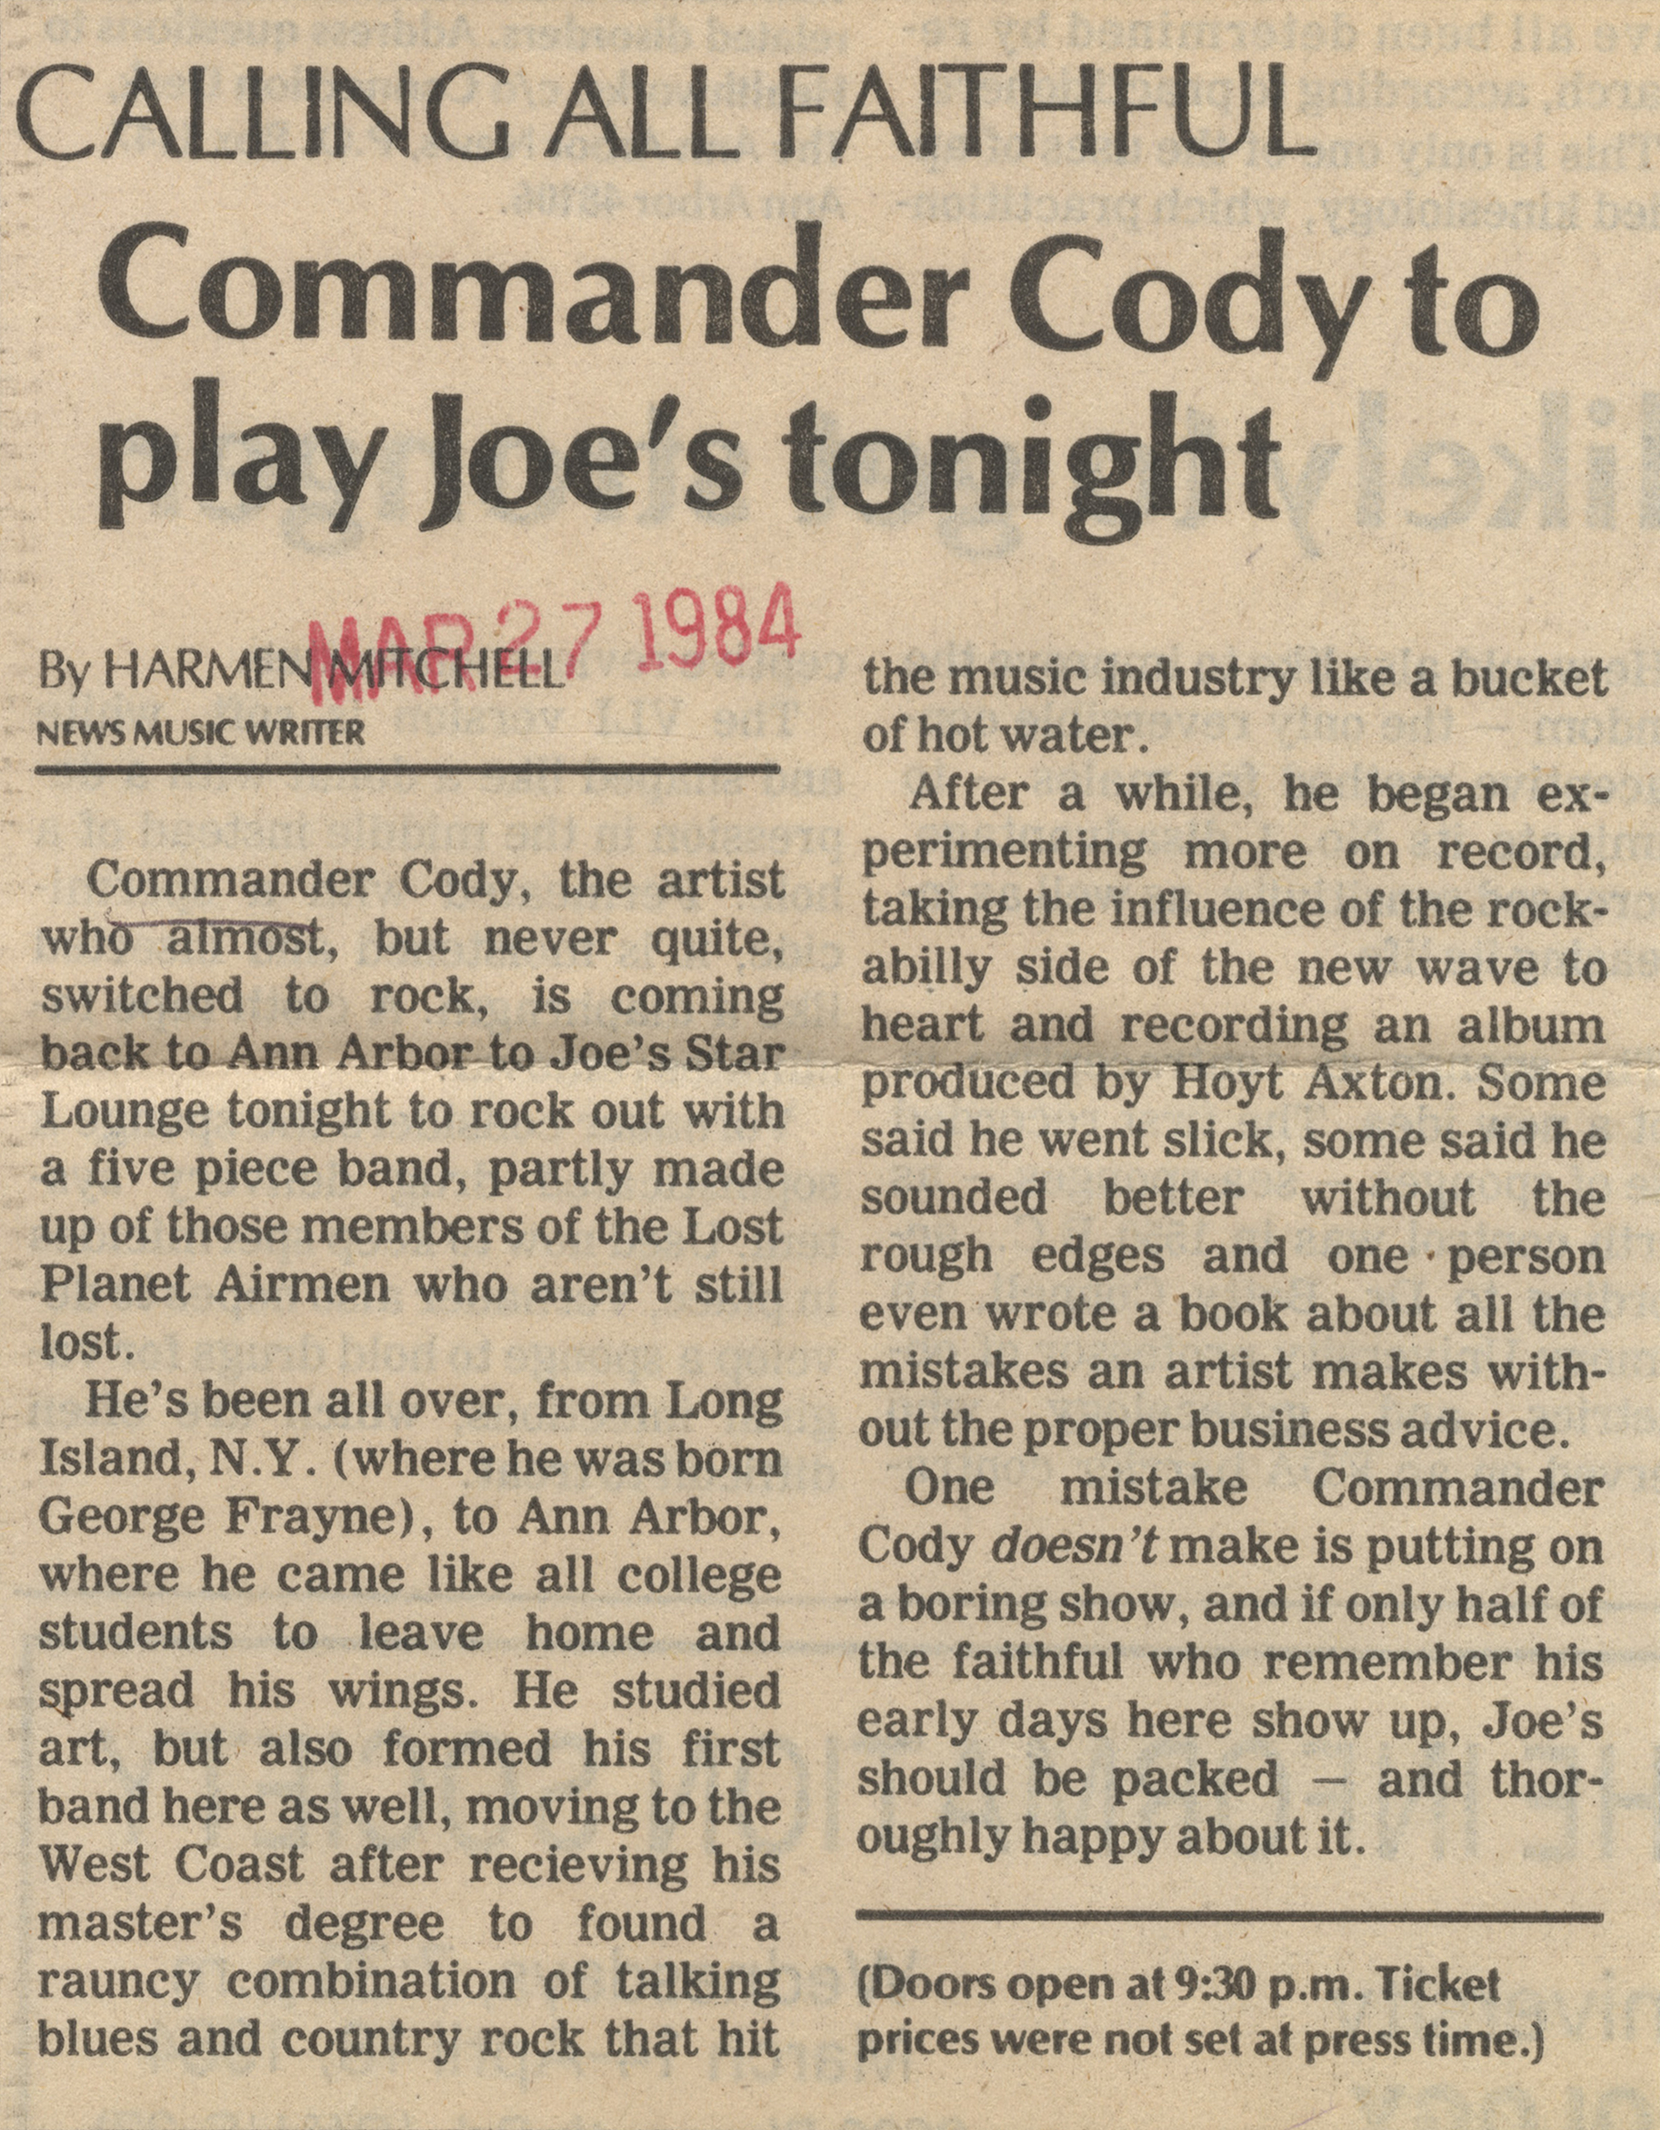 Commander Cody To Play Joe's Tonight image